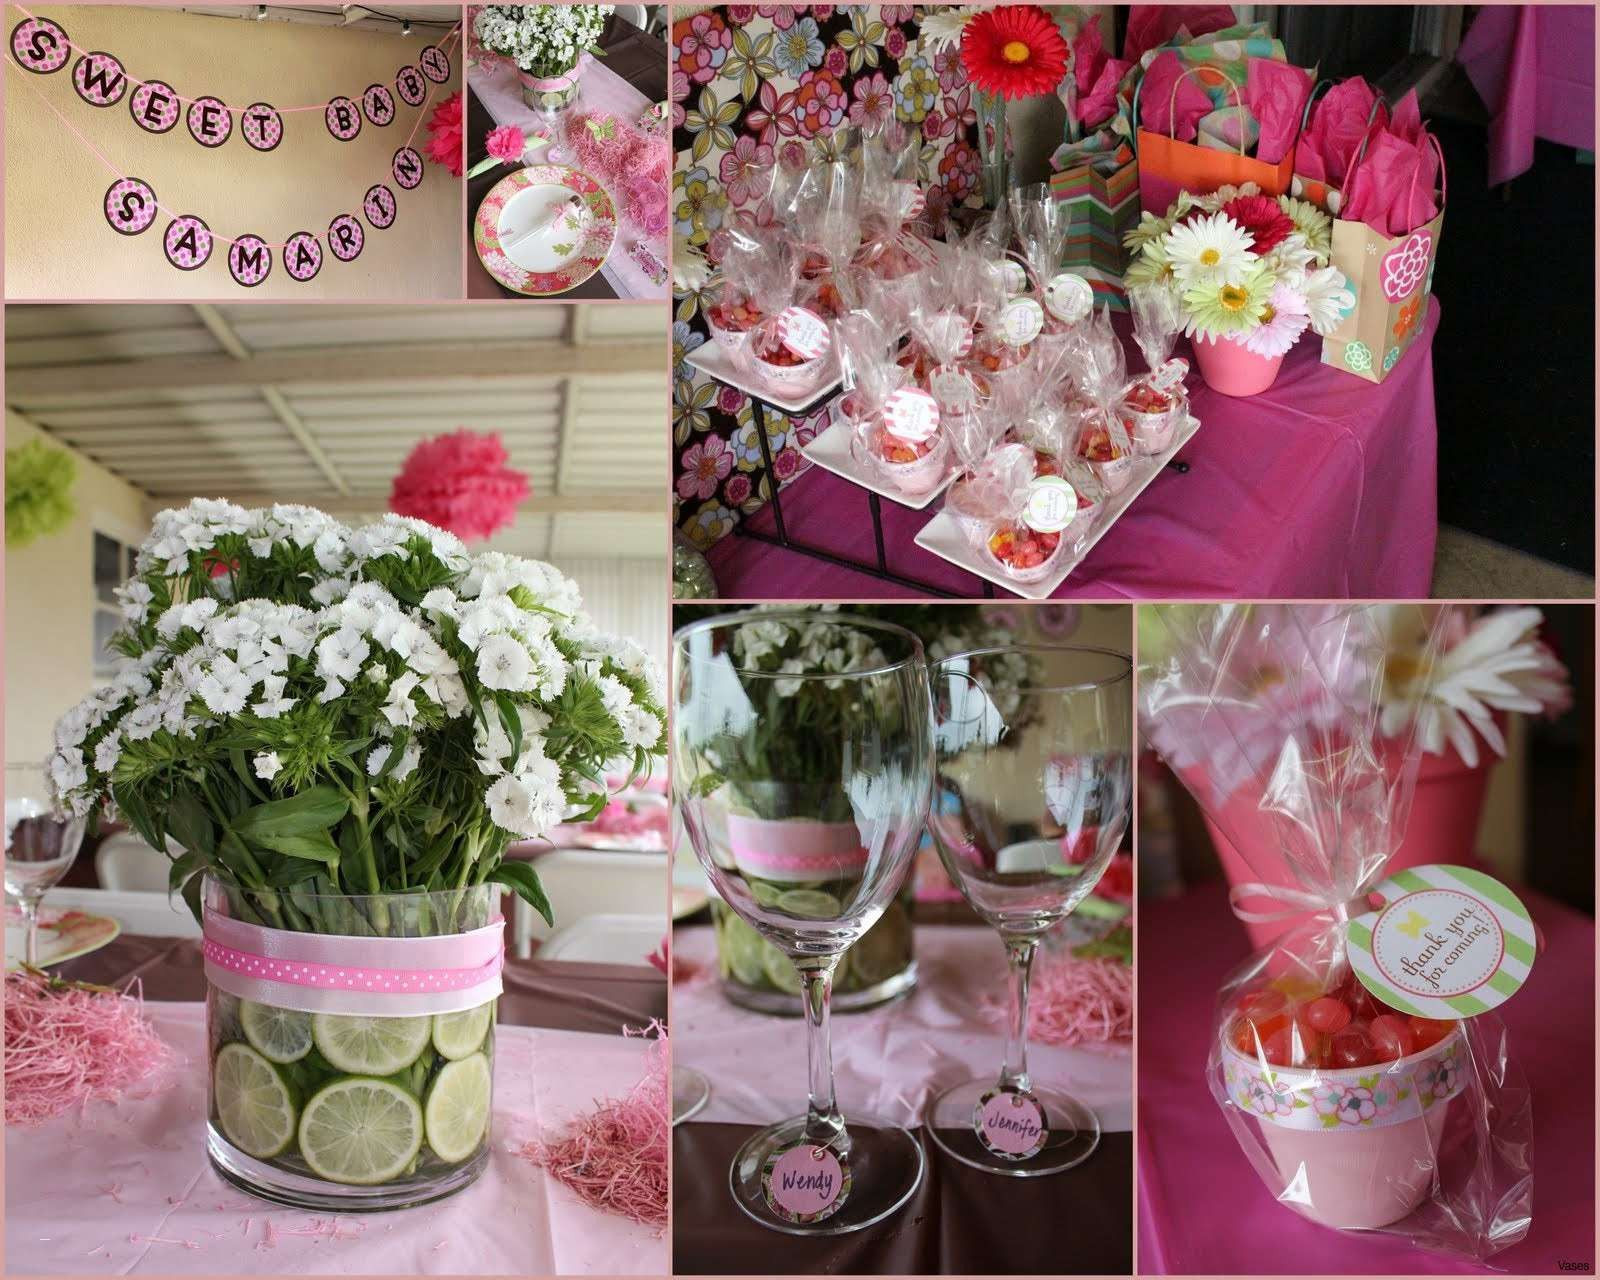 pearl vase fillers bulk of 30 pearl vase fillers the weekly world for baby shower vase centerpiece ideas vase and cellar image avorcor